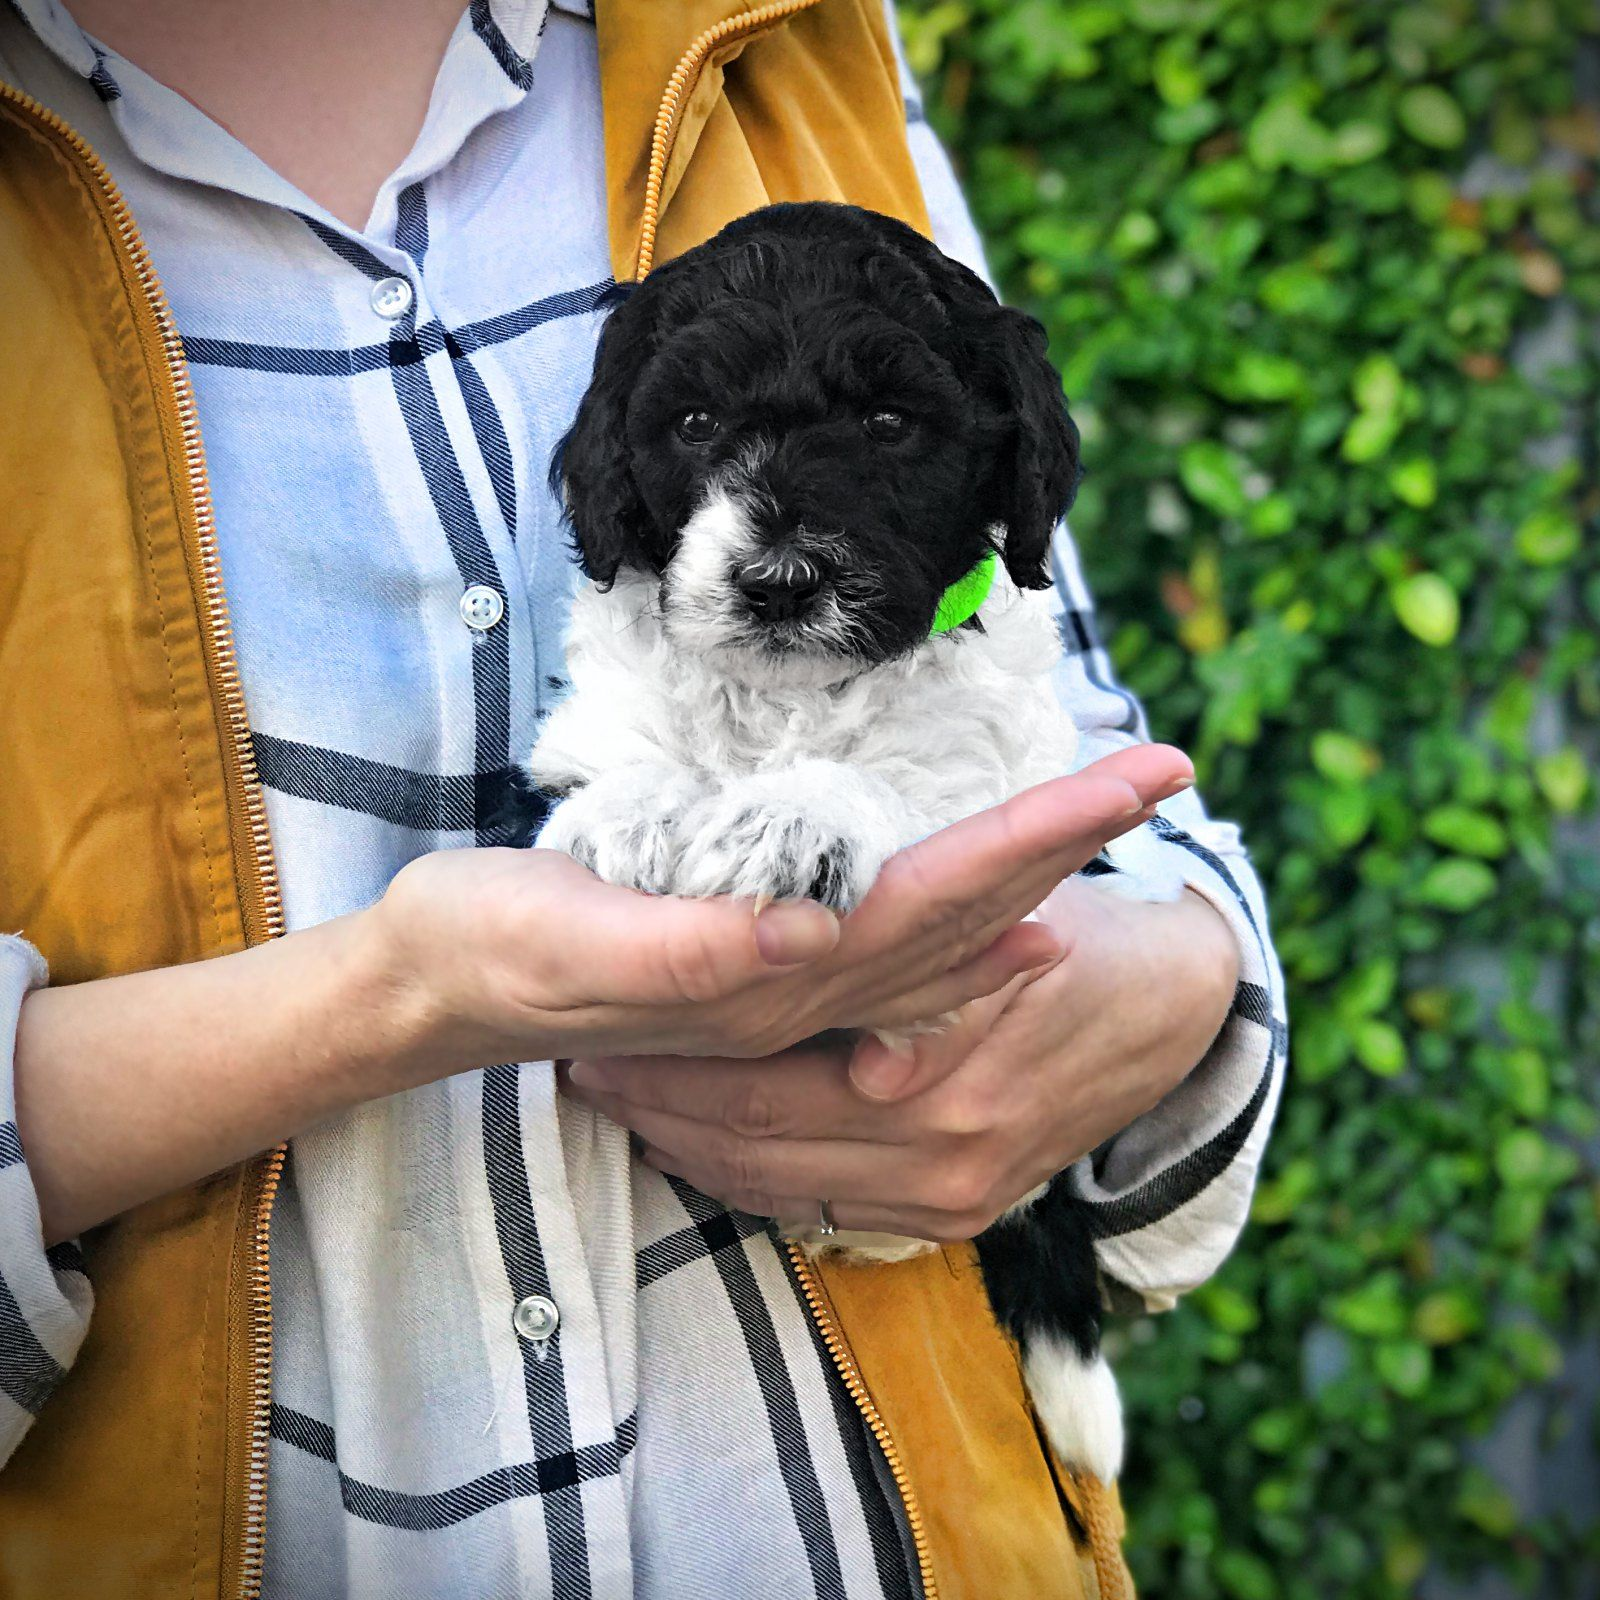 5 Weeks Old Poodle Central Valley California Puppies For Sale